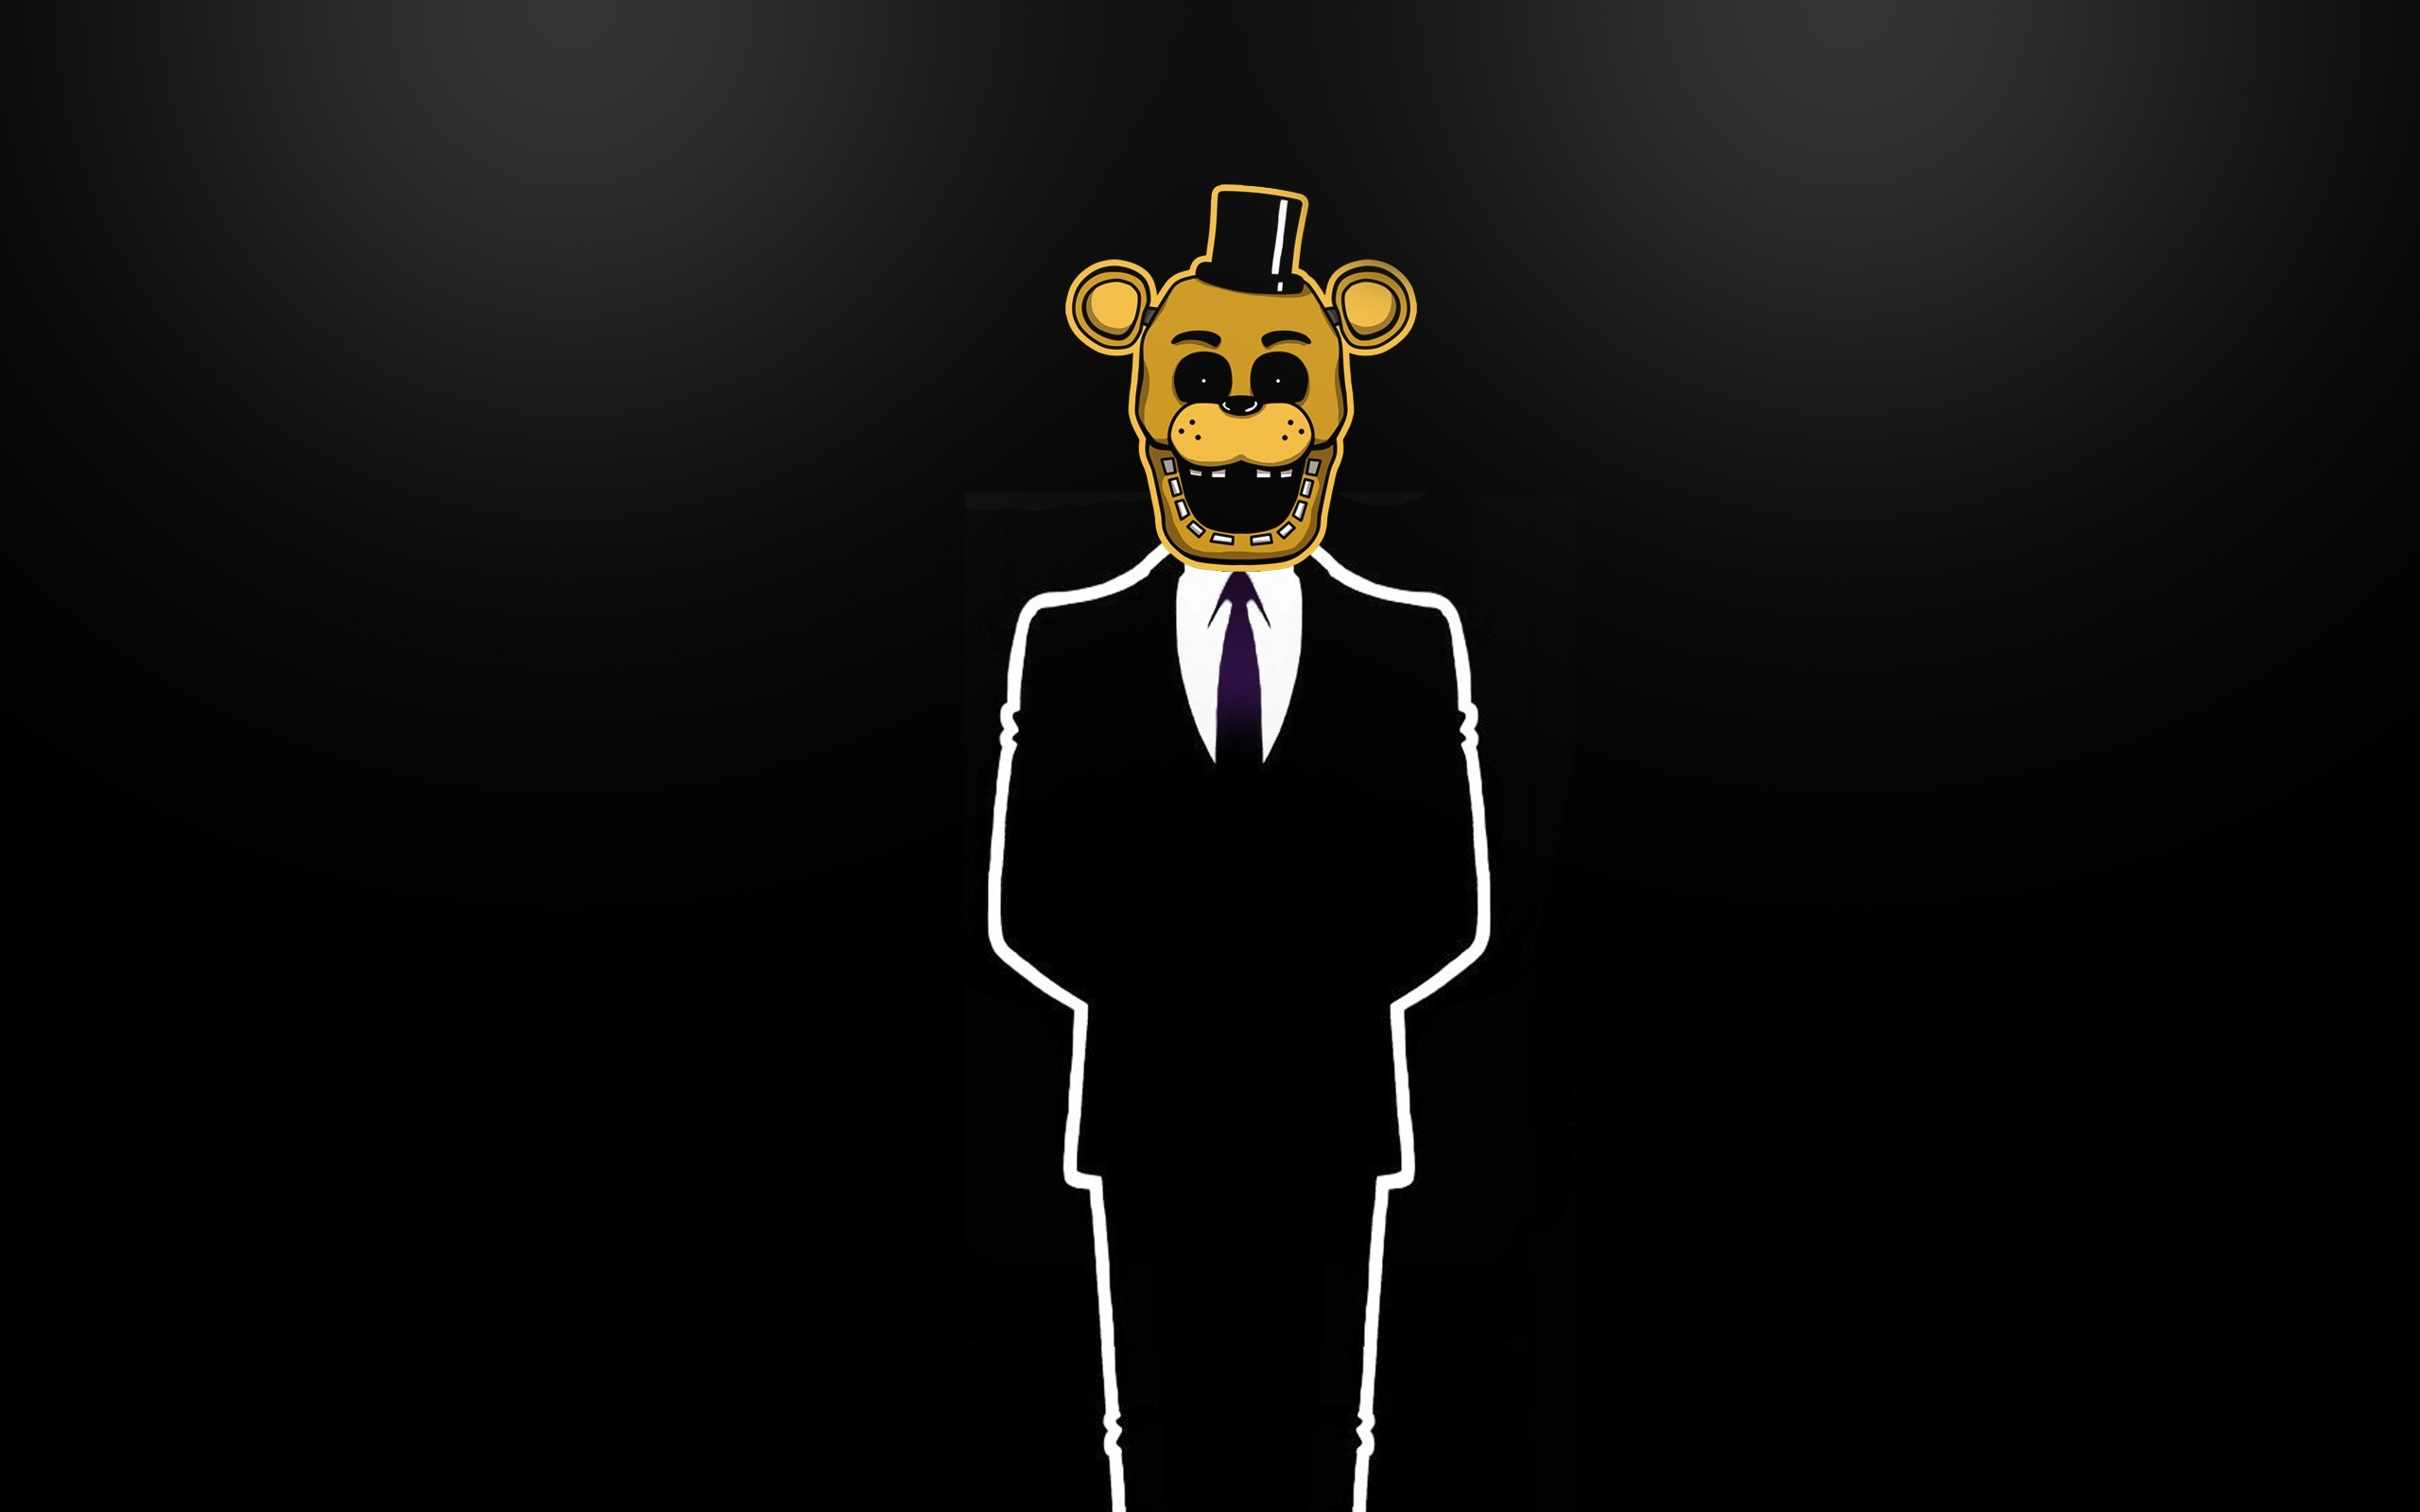 2560x1600 Wallpaper #fnaf, #goldenfreddy, #minimalism wallpapers minimalism .